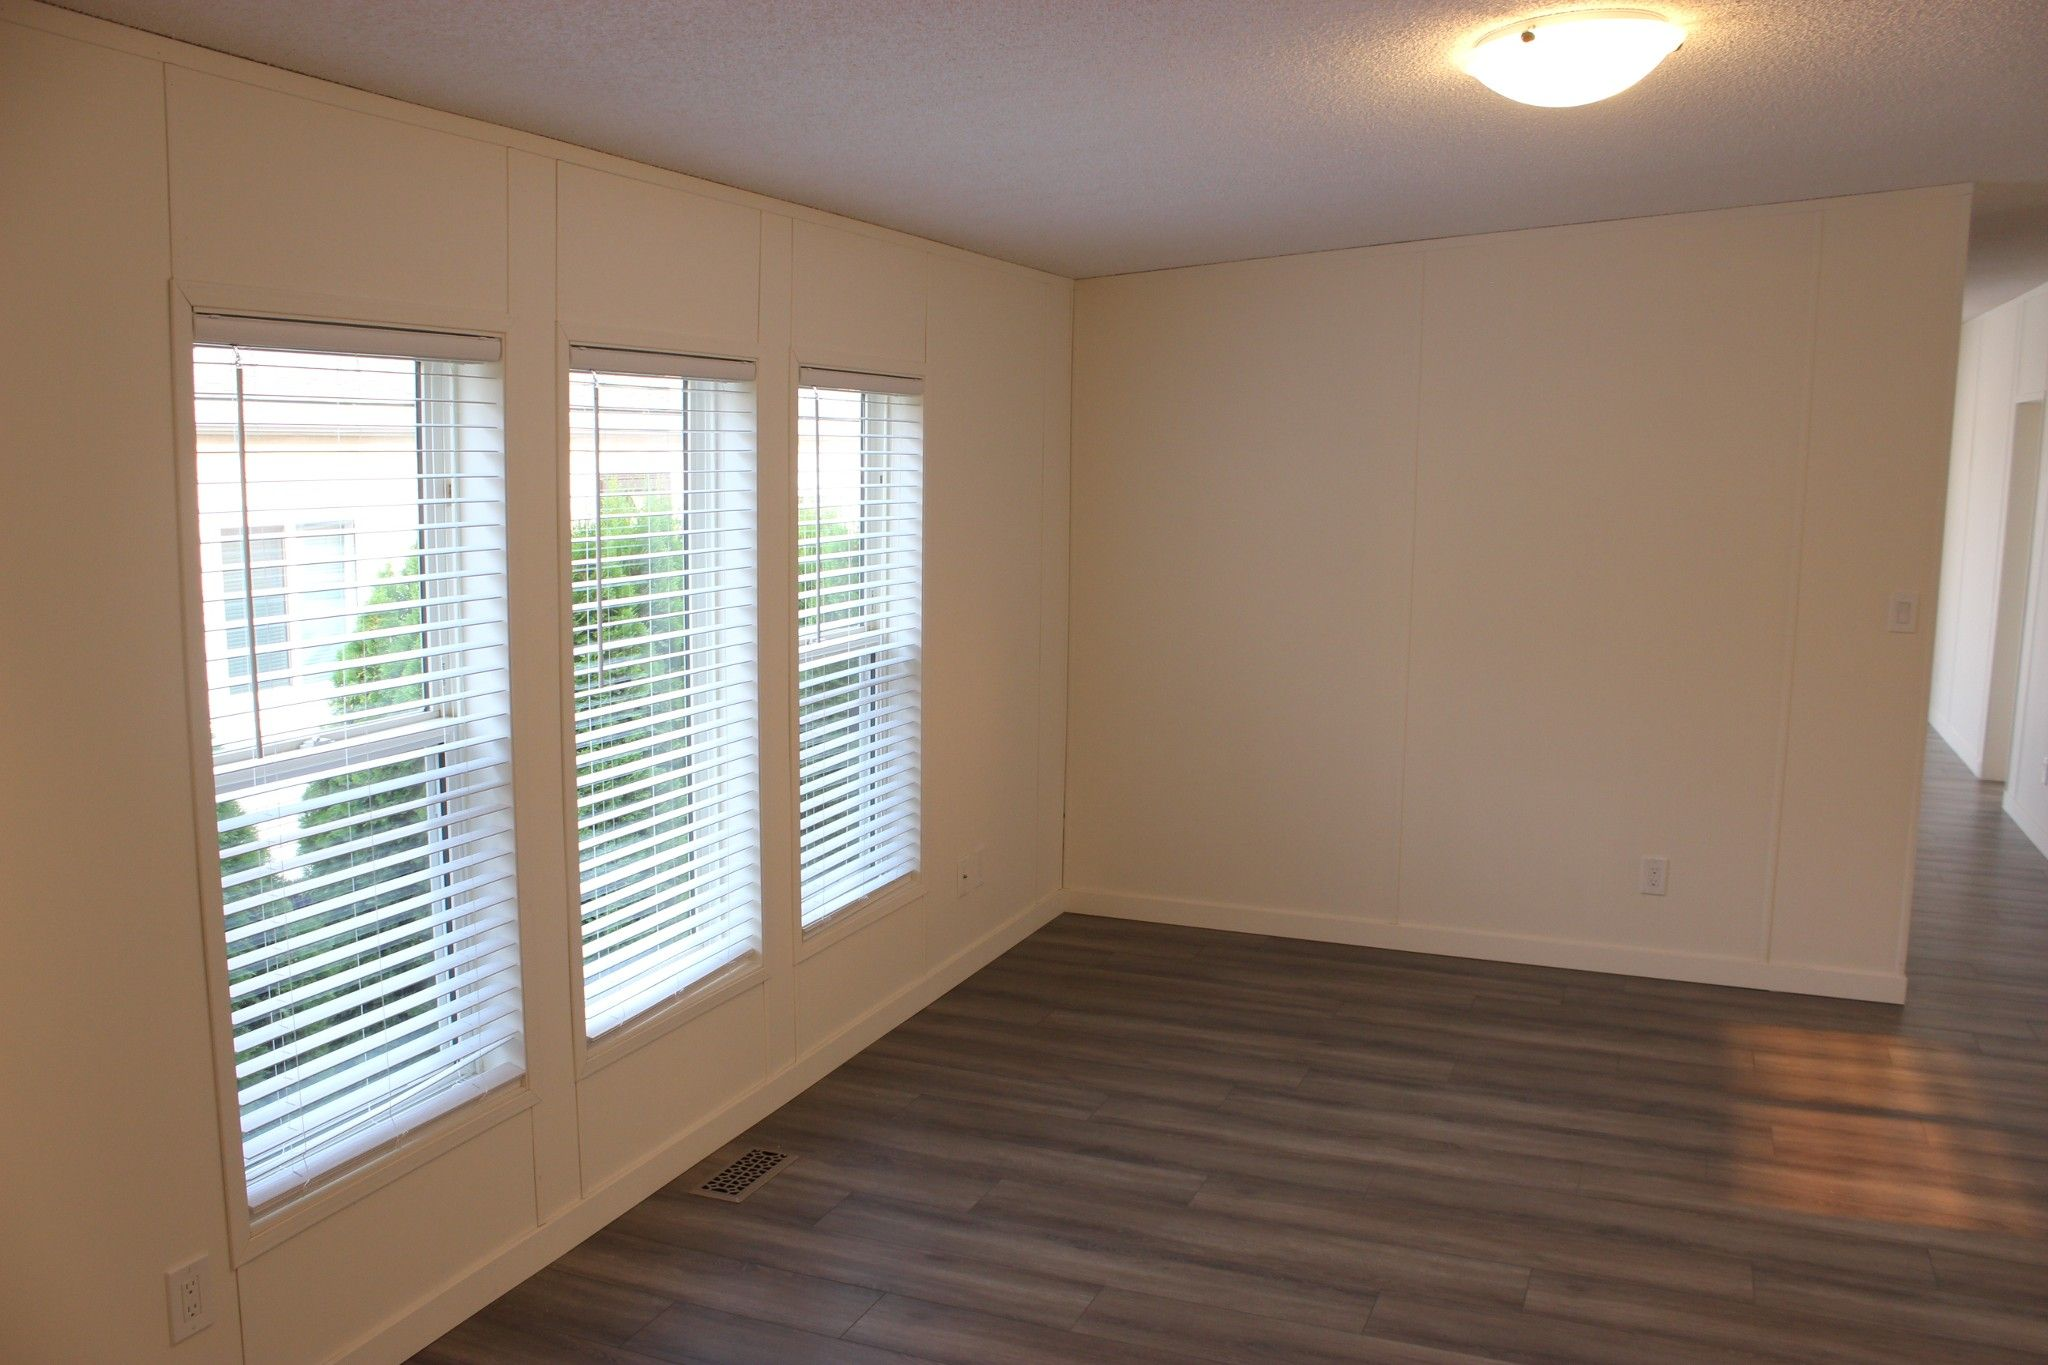 Photo 4: Photos: 22 3099 E Shuswap Road in Kamloops: South Thompson Valley Manufactured Home for sale : MLS®# 147827